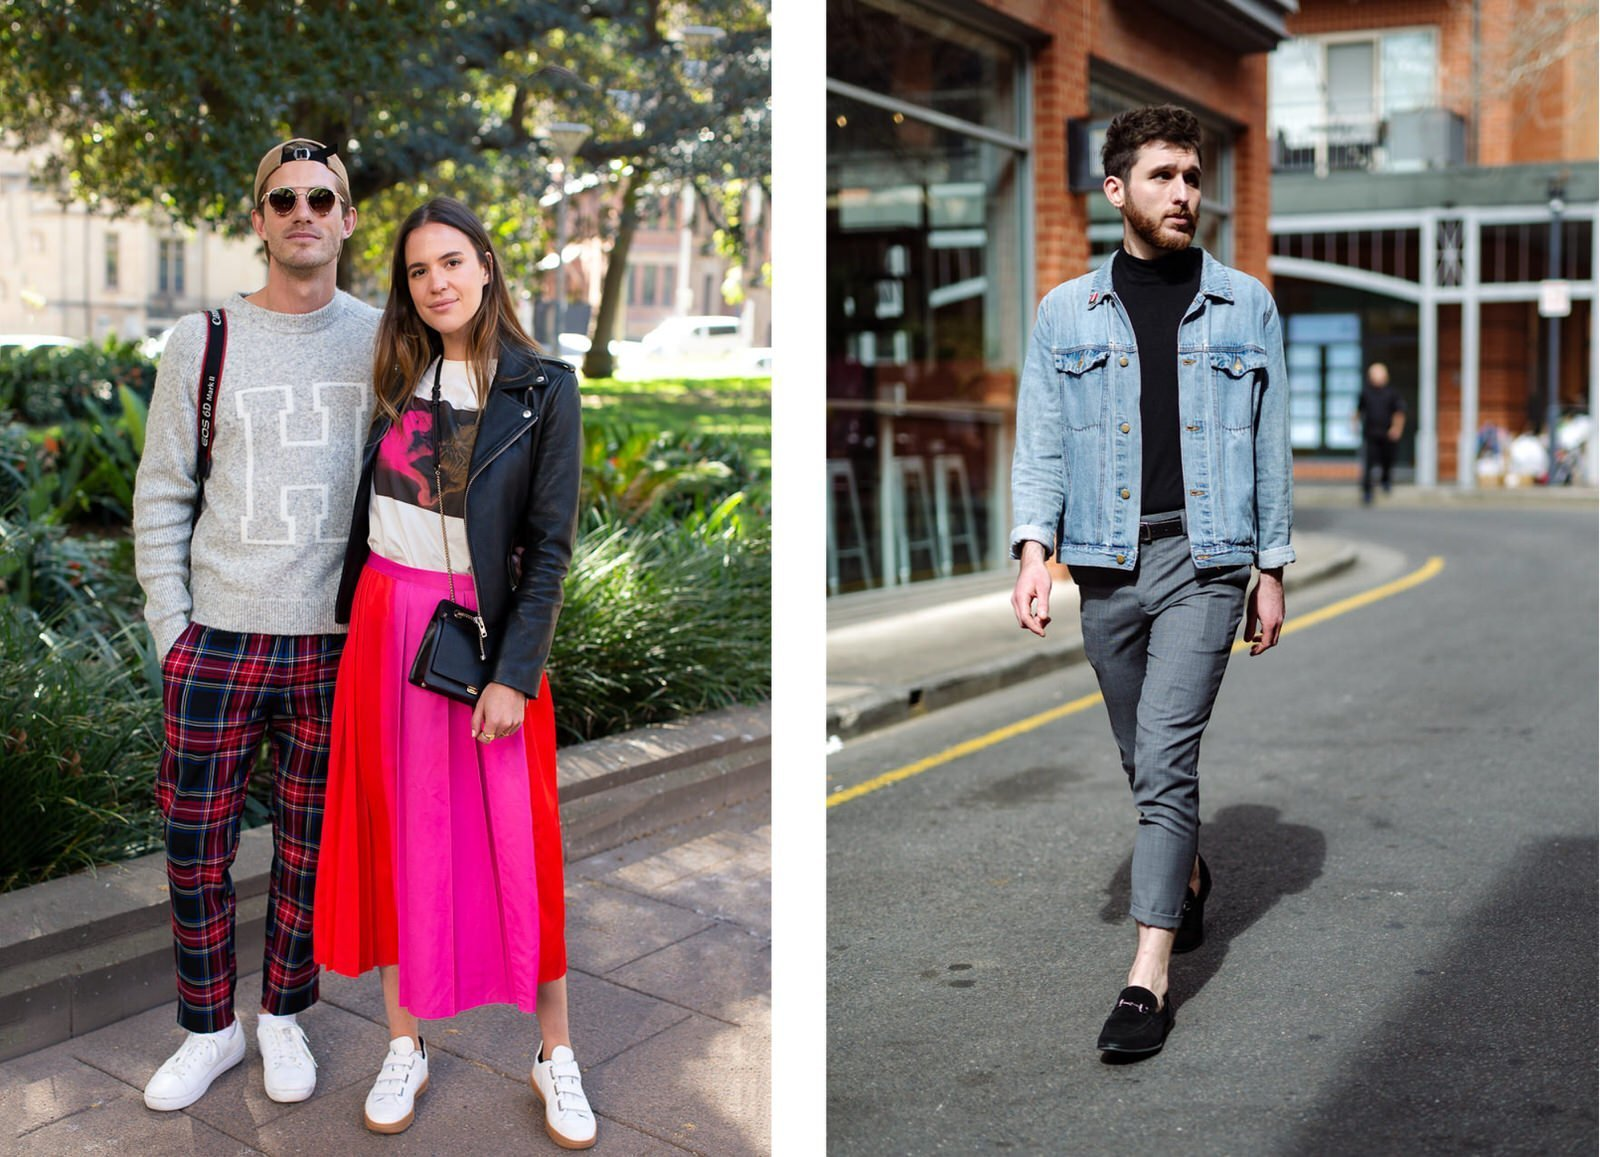 Local Street Style for Spring